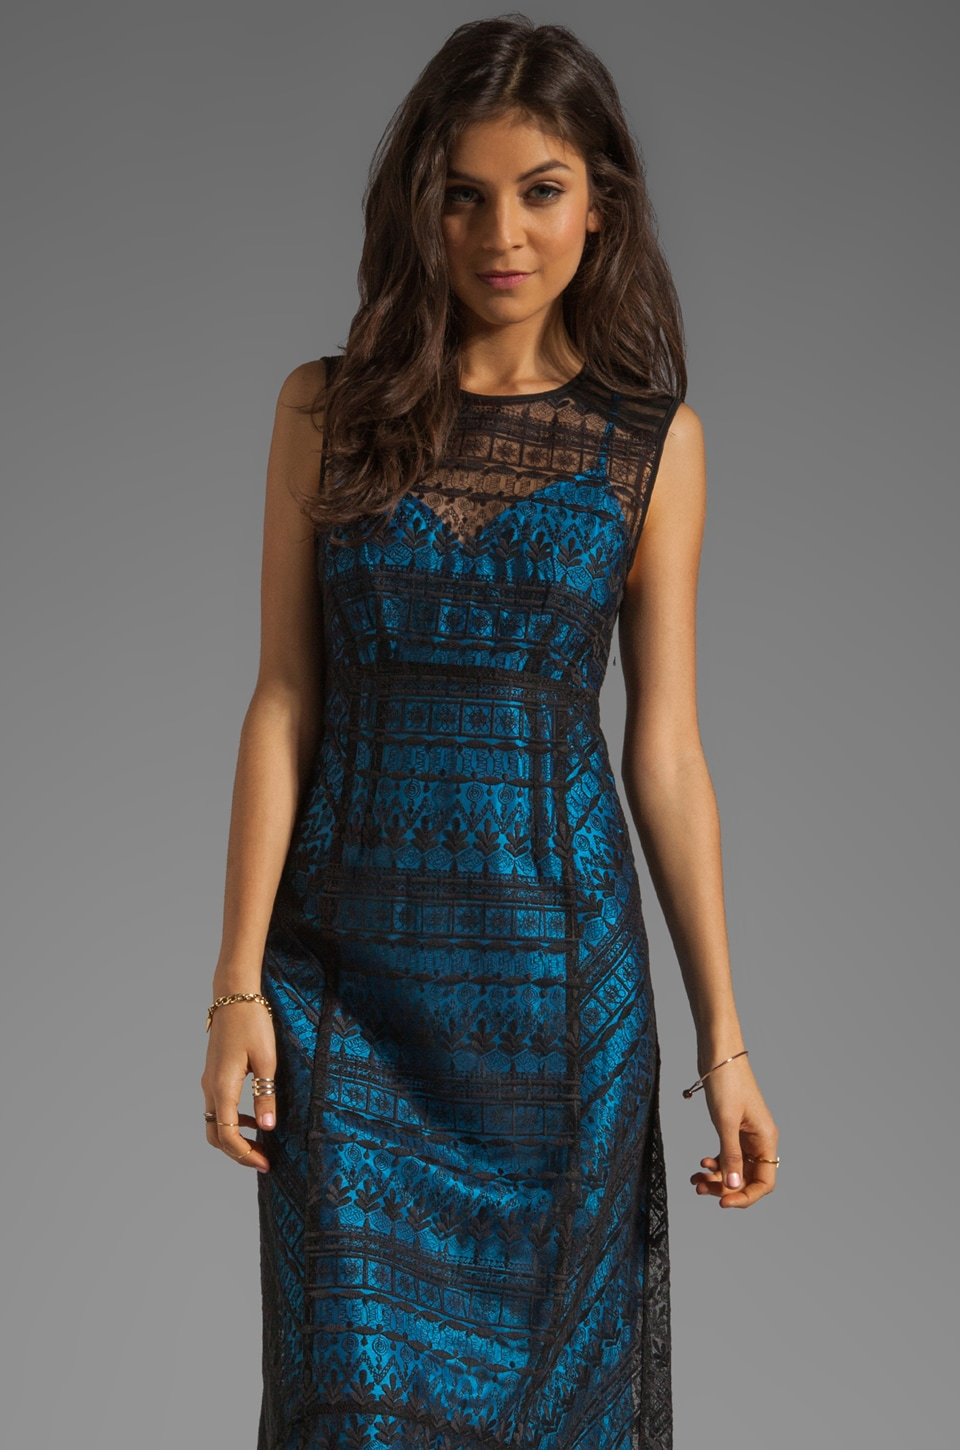 Nanette Lepore Appaloosa Laces Dress in Black and Blue Sky